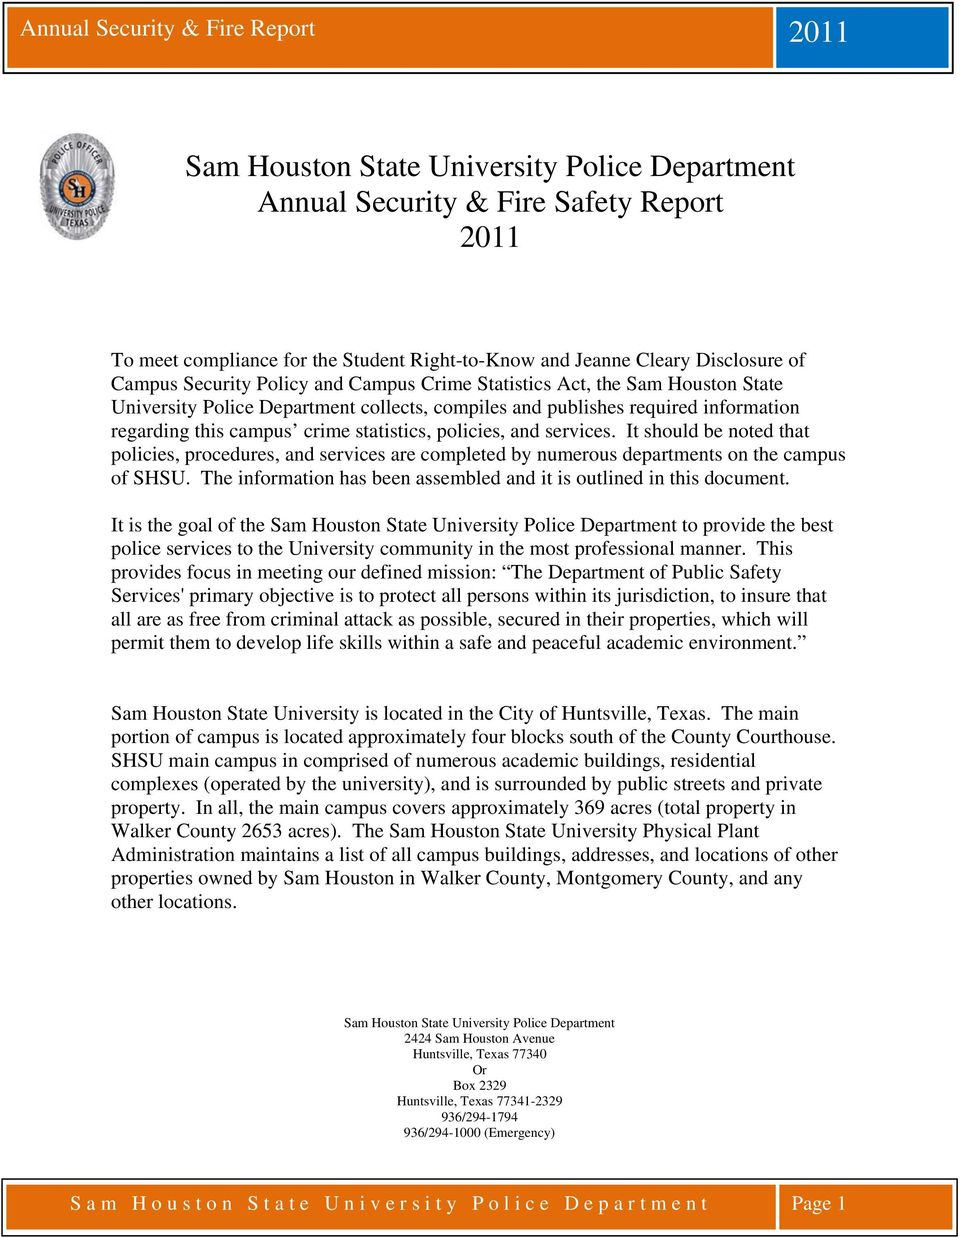 It should be noted that policies, procedures, and services are completed by numerous departments on the campus of SHSU. The information has been assembled and it is outlined in this document.